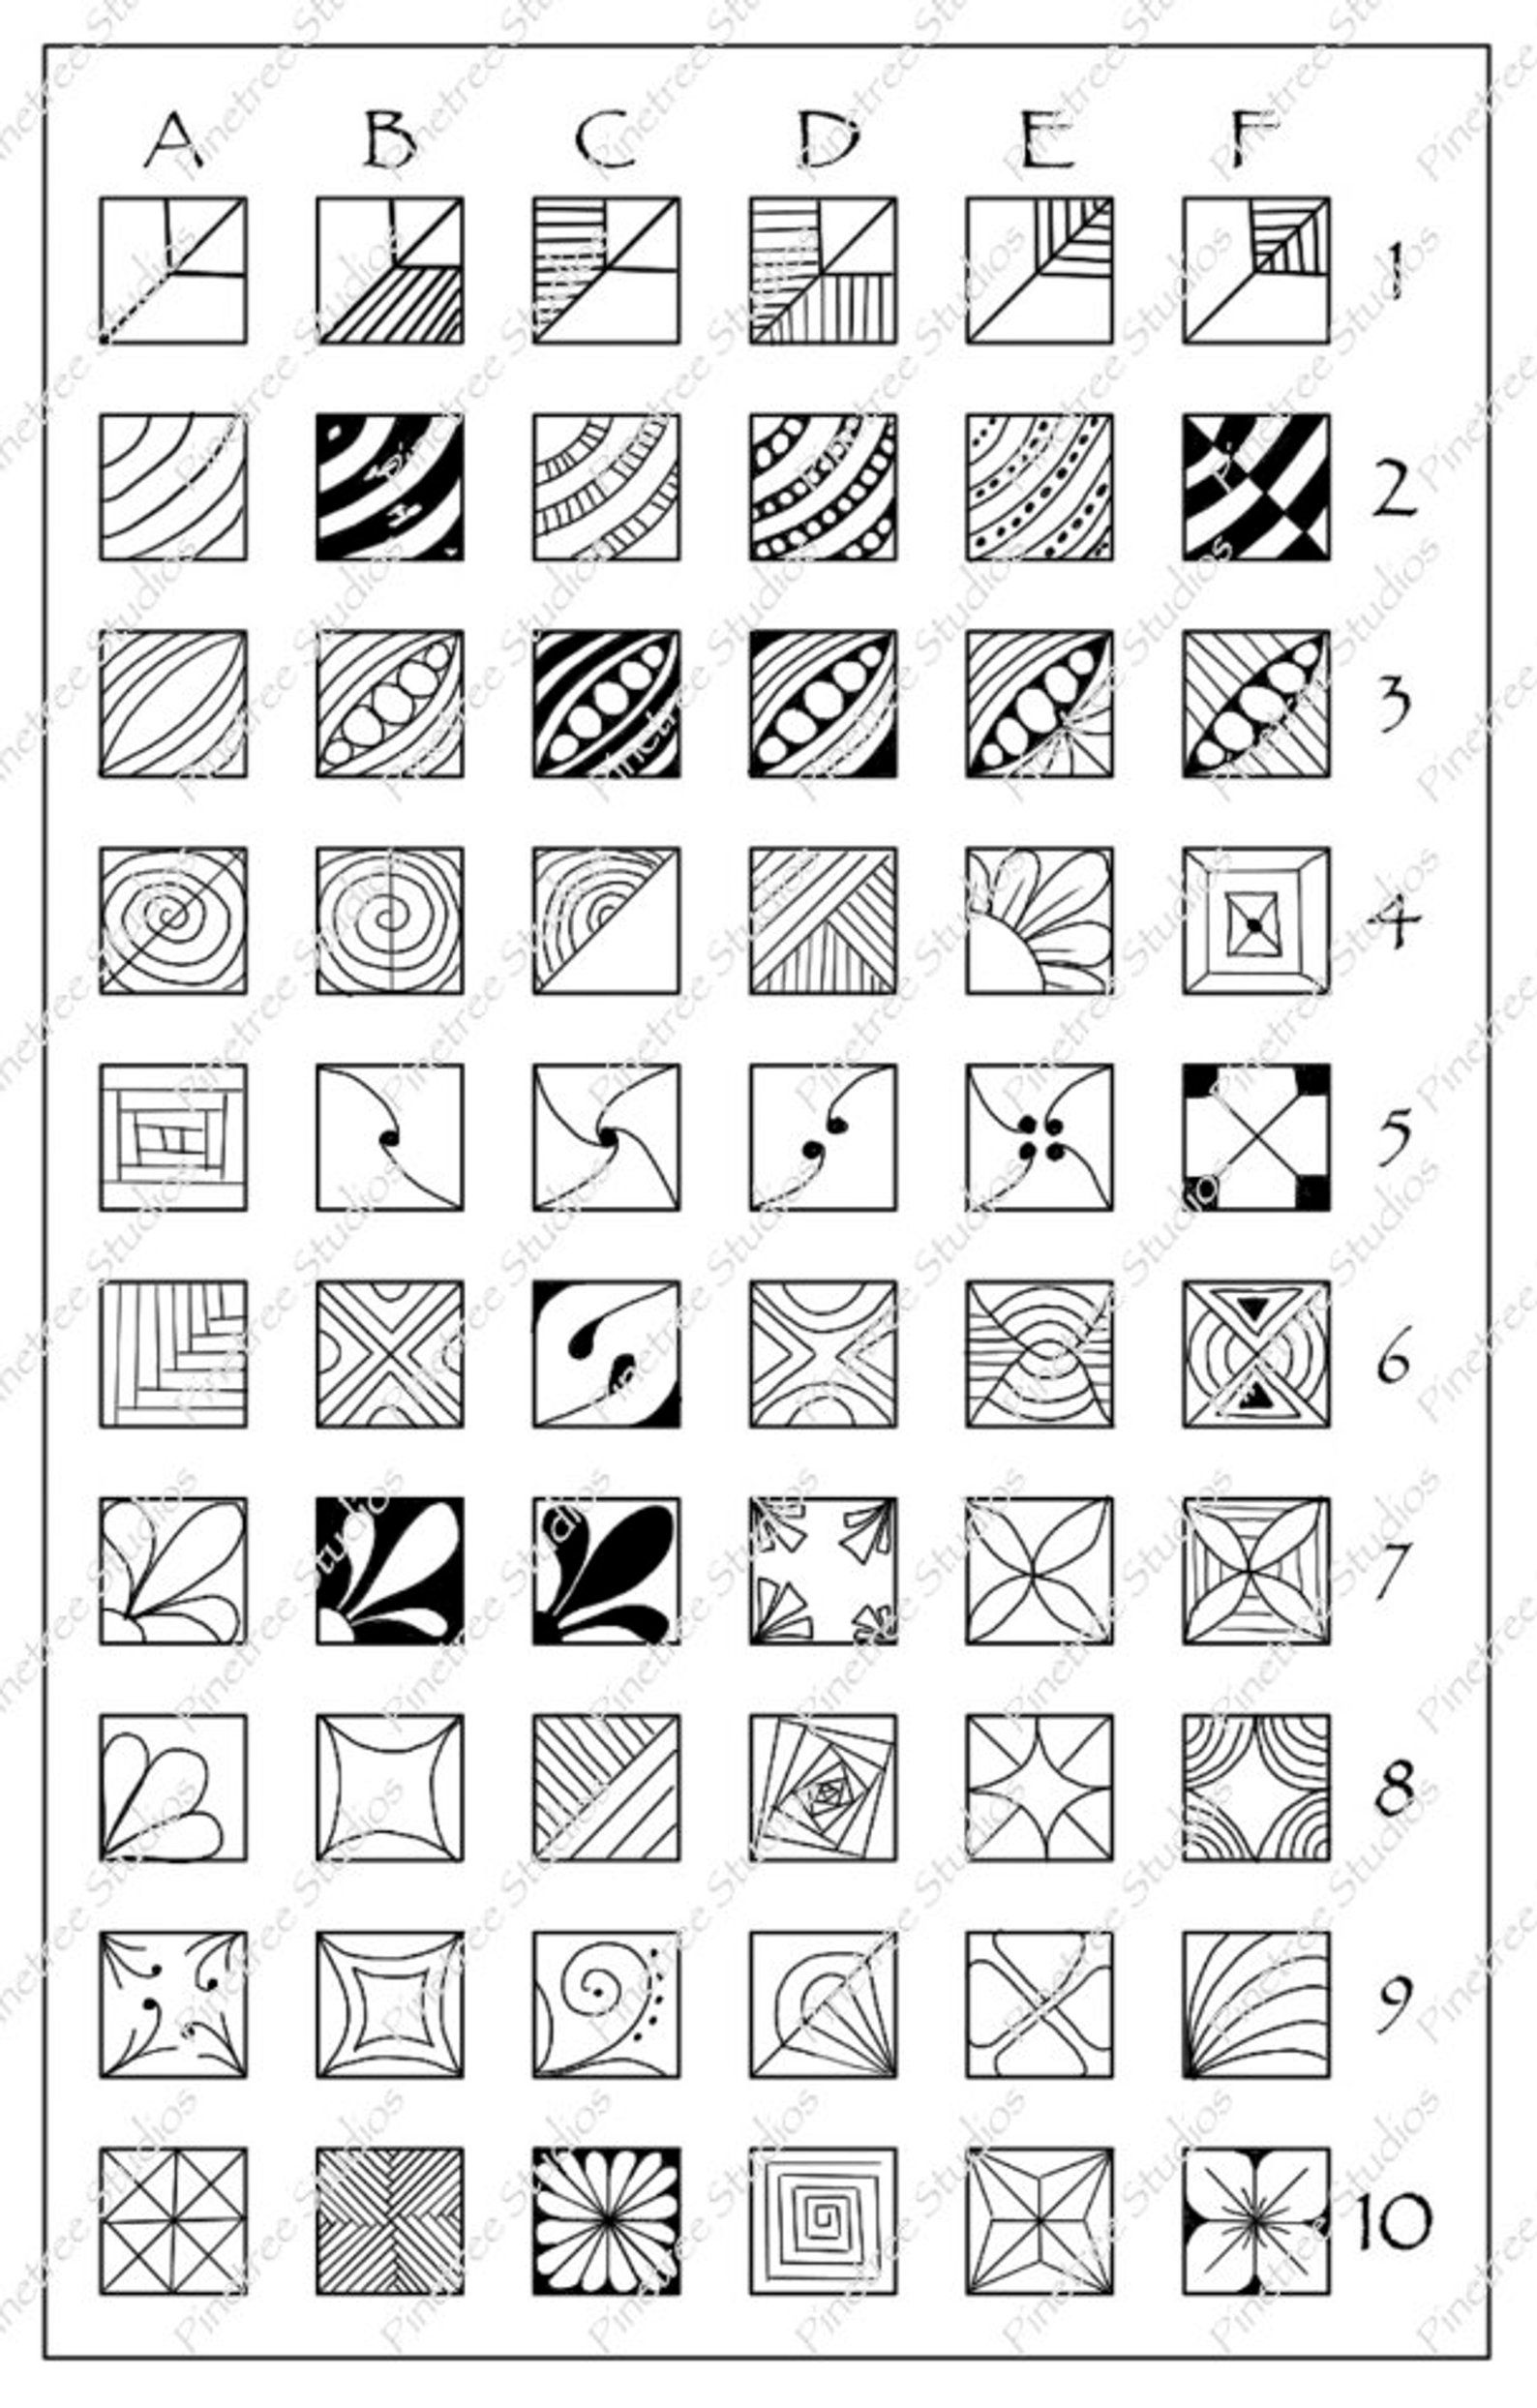 Square Fragments Patterns Chart 5 X 8 Digital